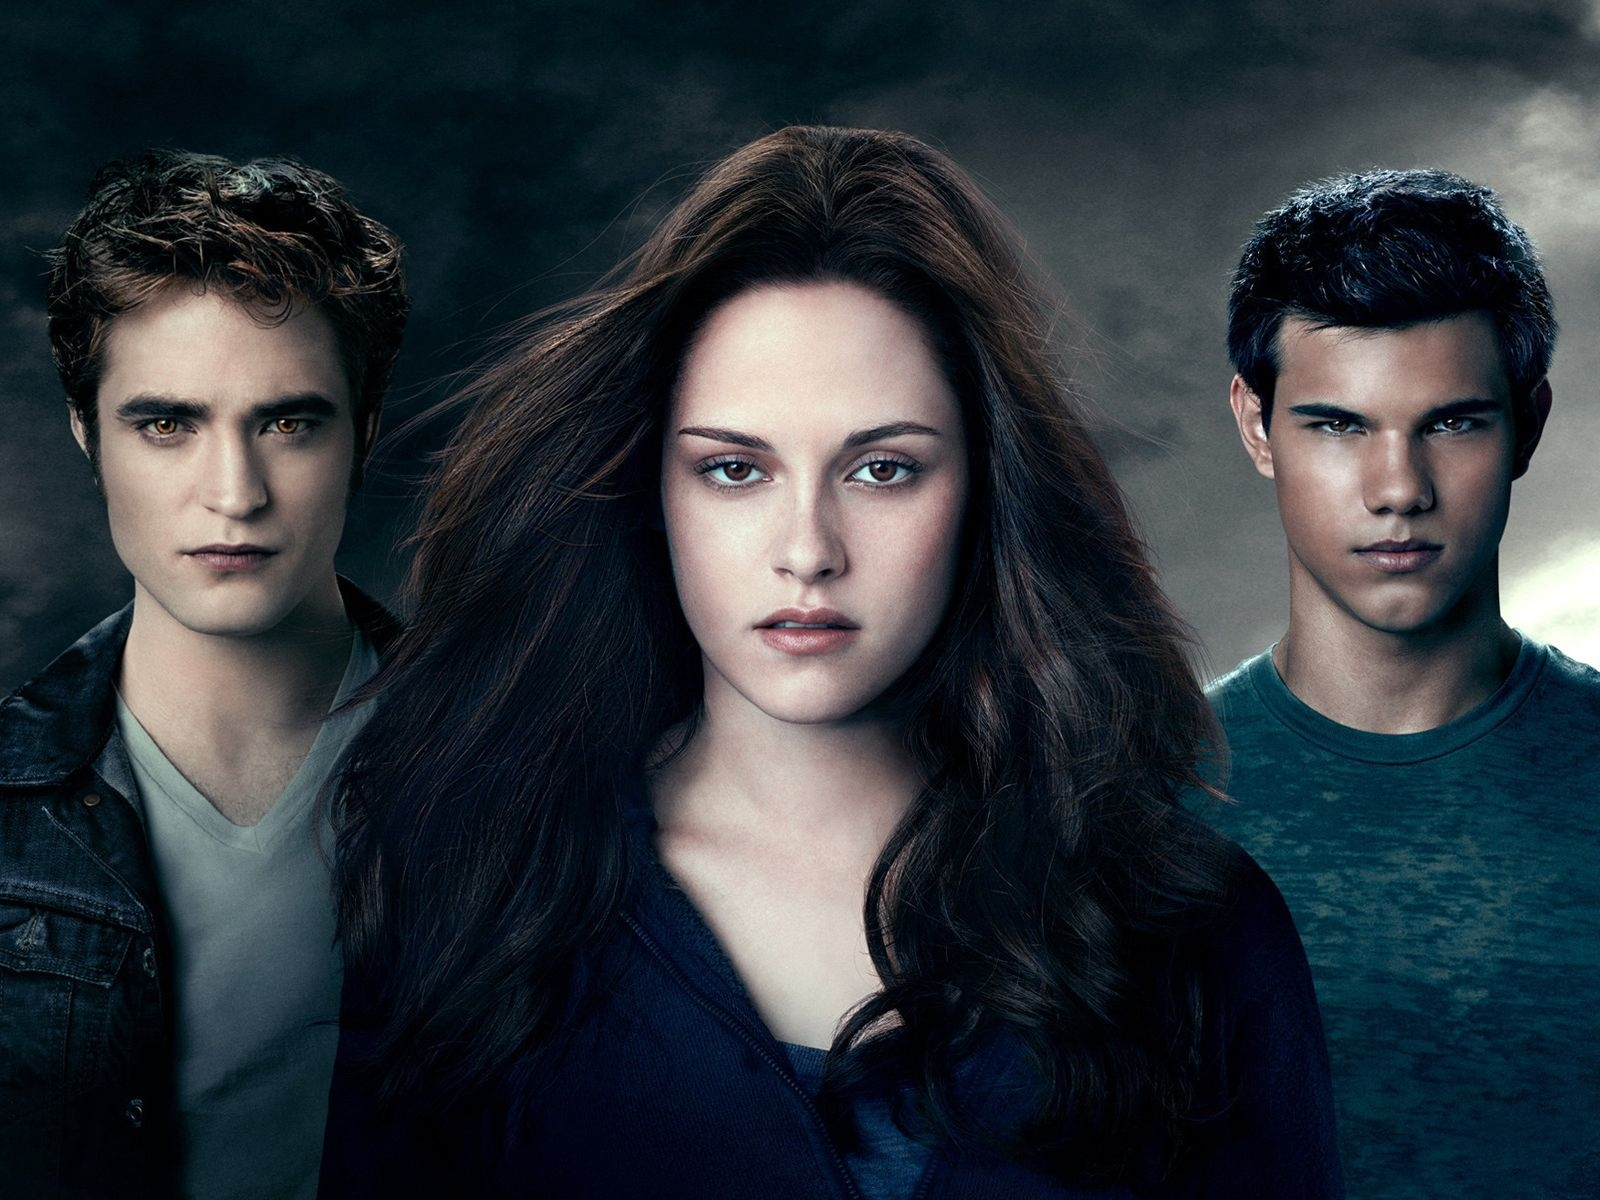 New Moon The Twilight Saga wallpaper 77 images pictures download 1600x1200